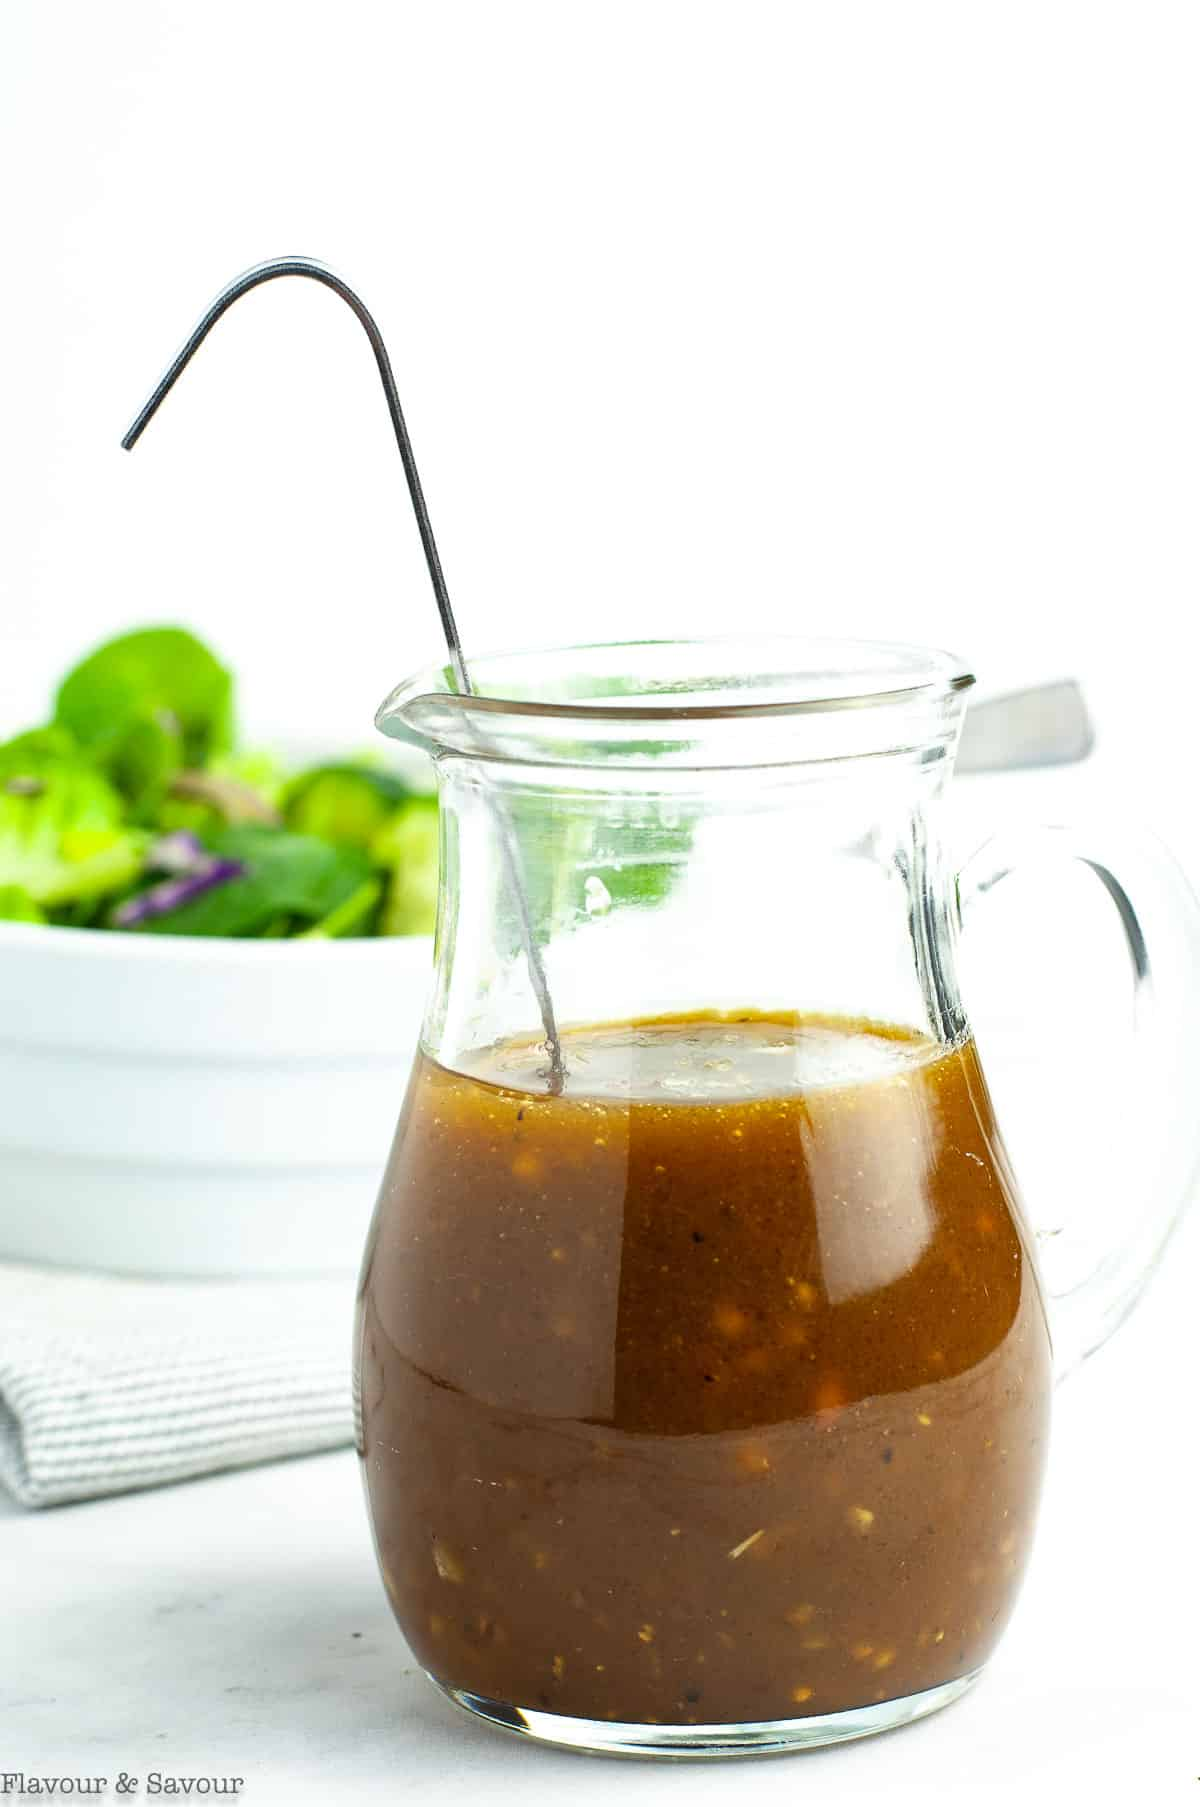 A small pitcher of Maple Balsamic Dressing with a salad